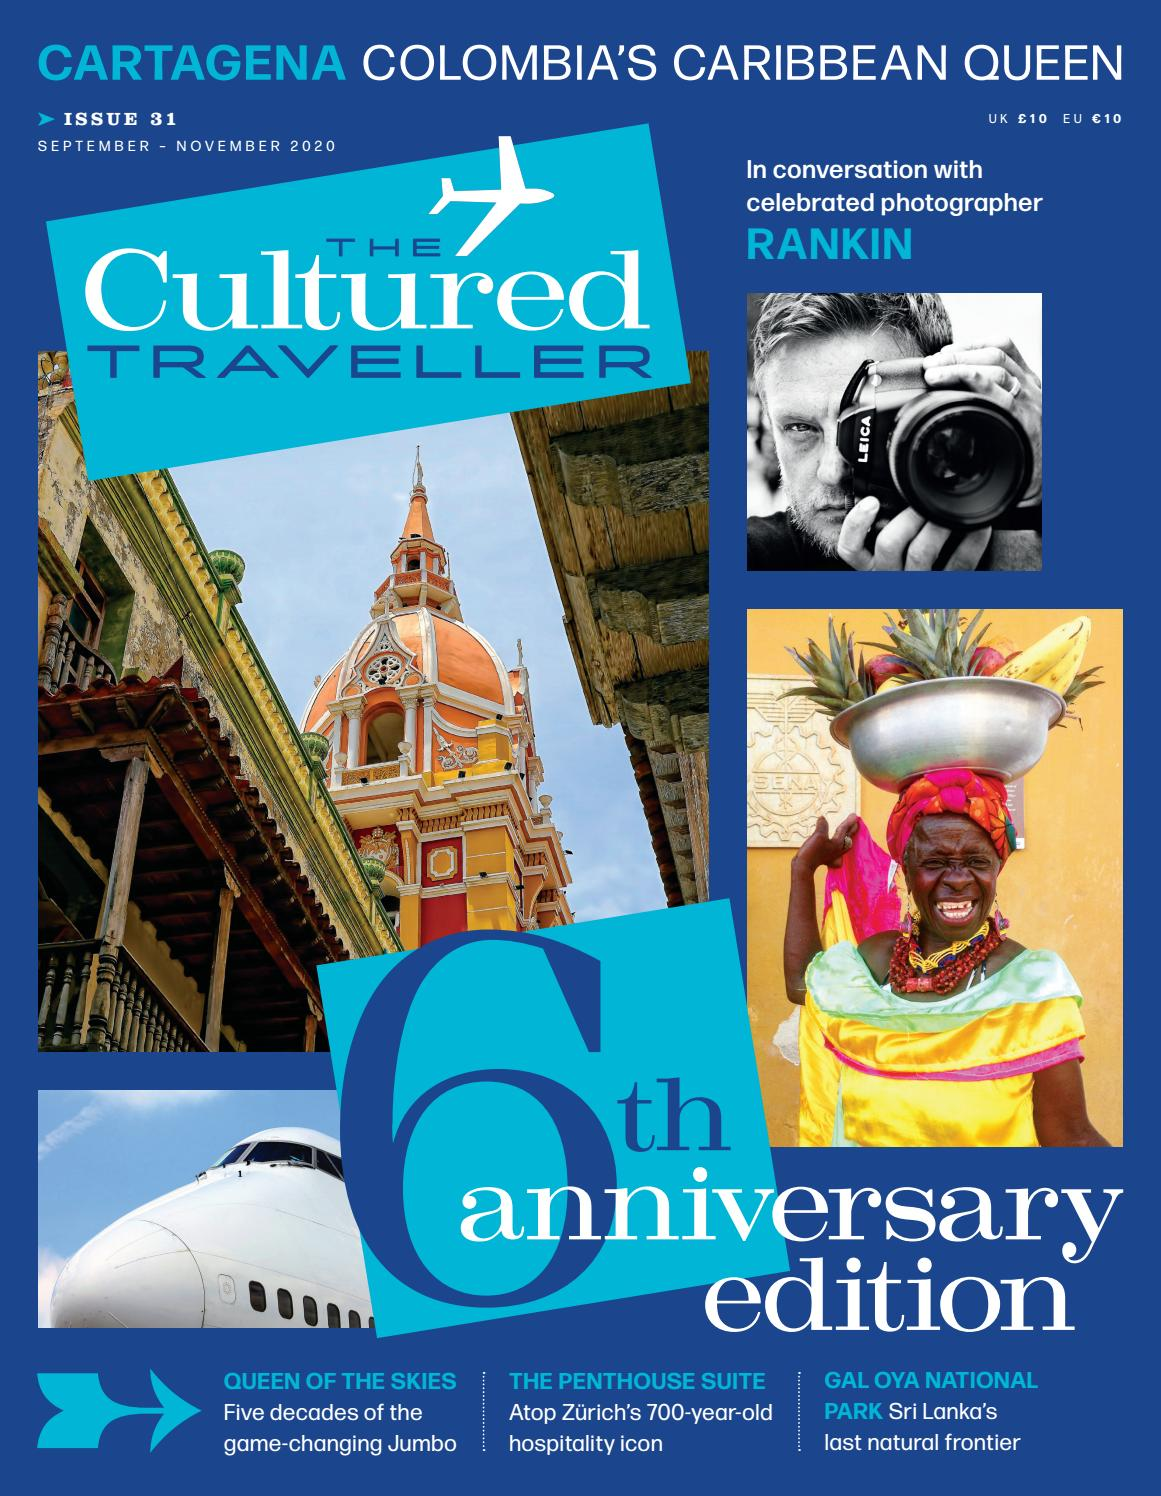 The Cultured Traveller Sixth Anniversary Edition September November 2020 Issue 31 By The Cultured Traveller Issuu